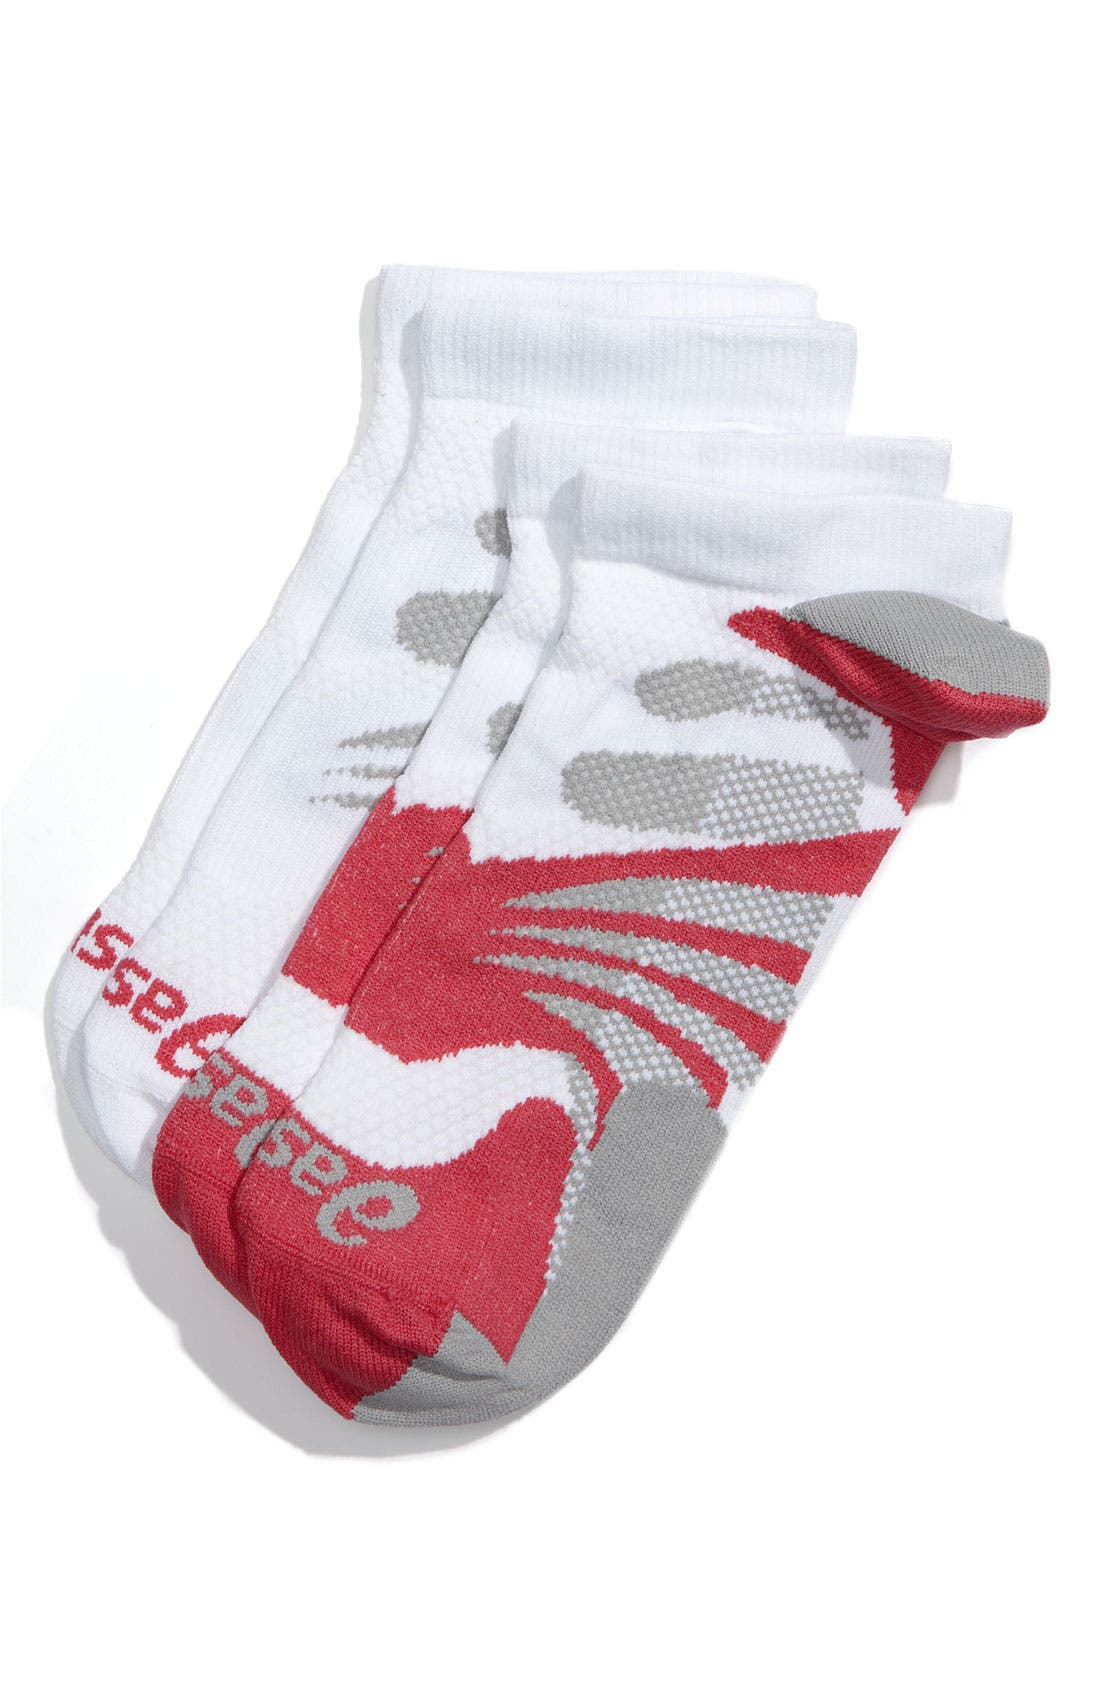 Alternate Image 1 Selected - ASICS® 'Hera Diva Sleek' Running Socks (2-Pack) (Women)